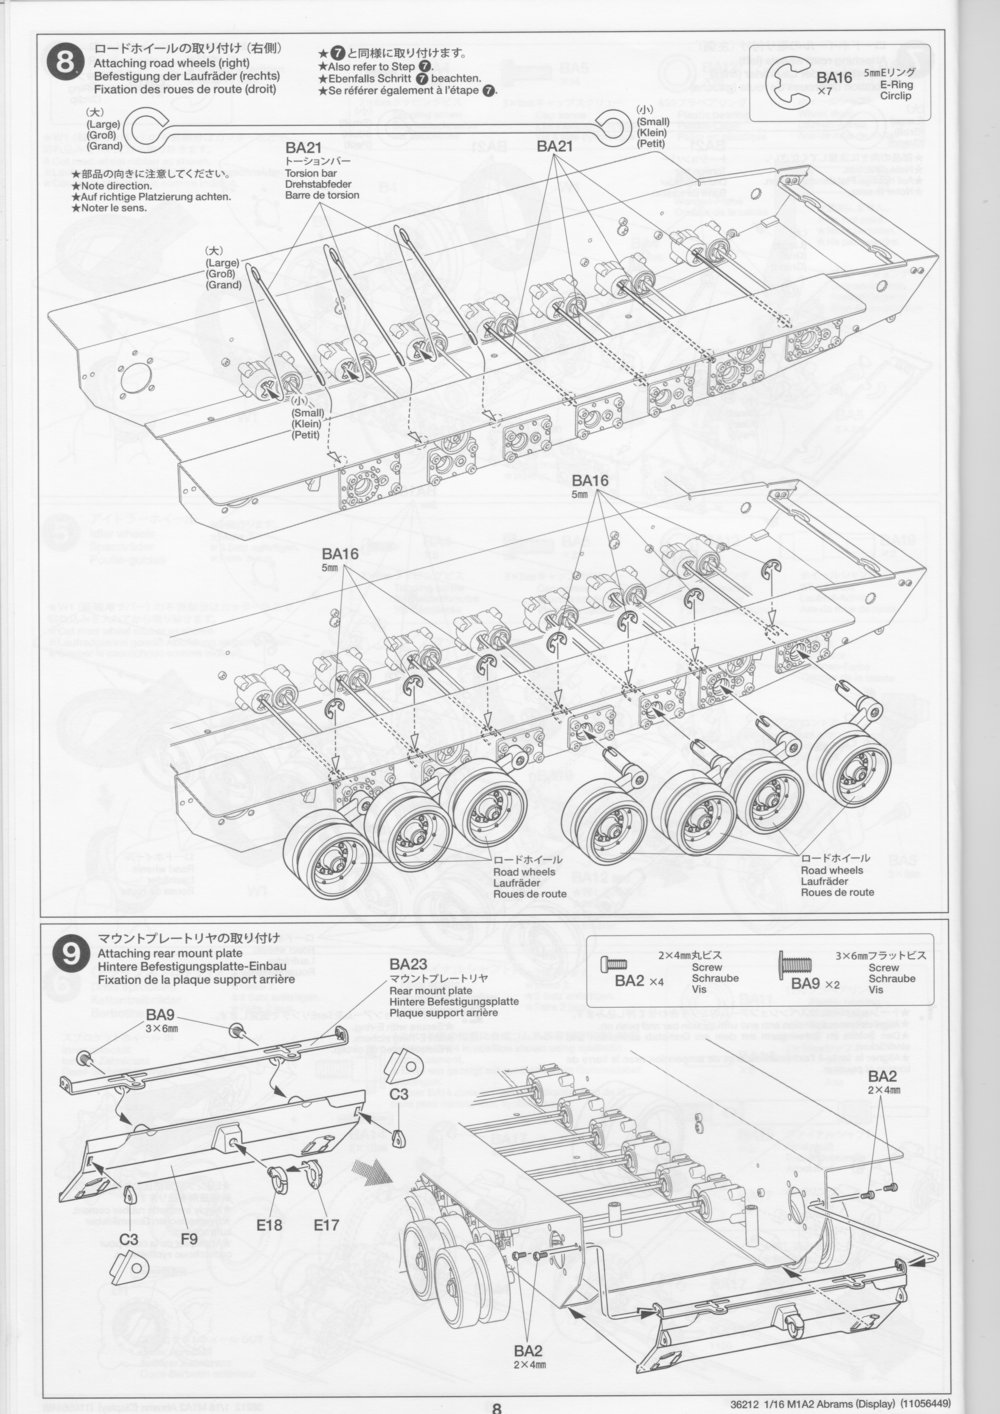 tamiya kit 36212 1 16 m1a2 abrams display model part 2 M1 Garand img 0001